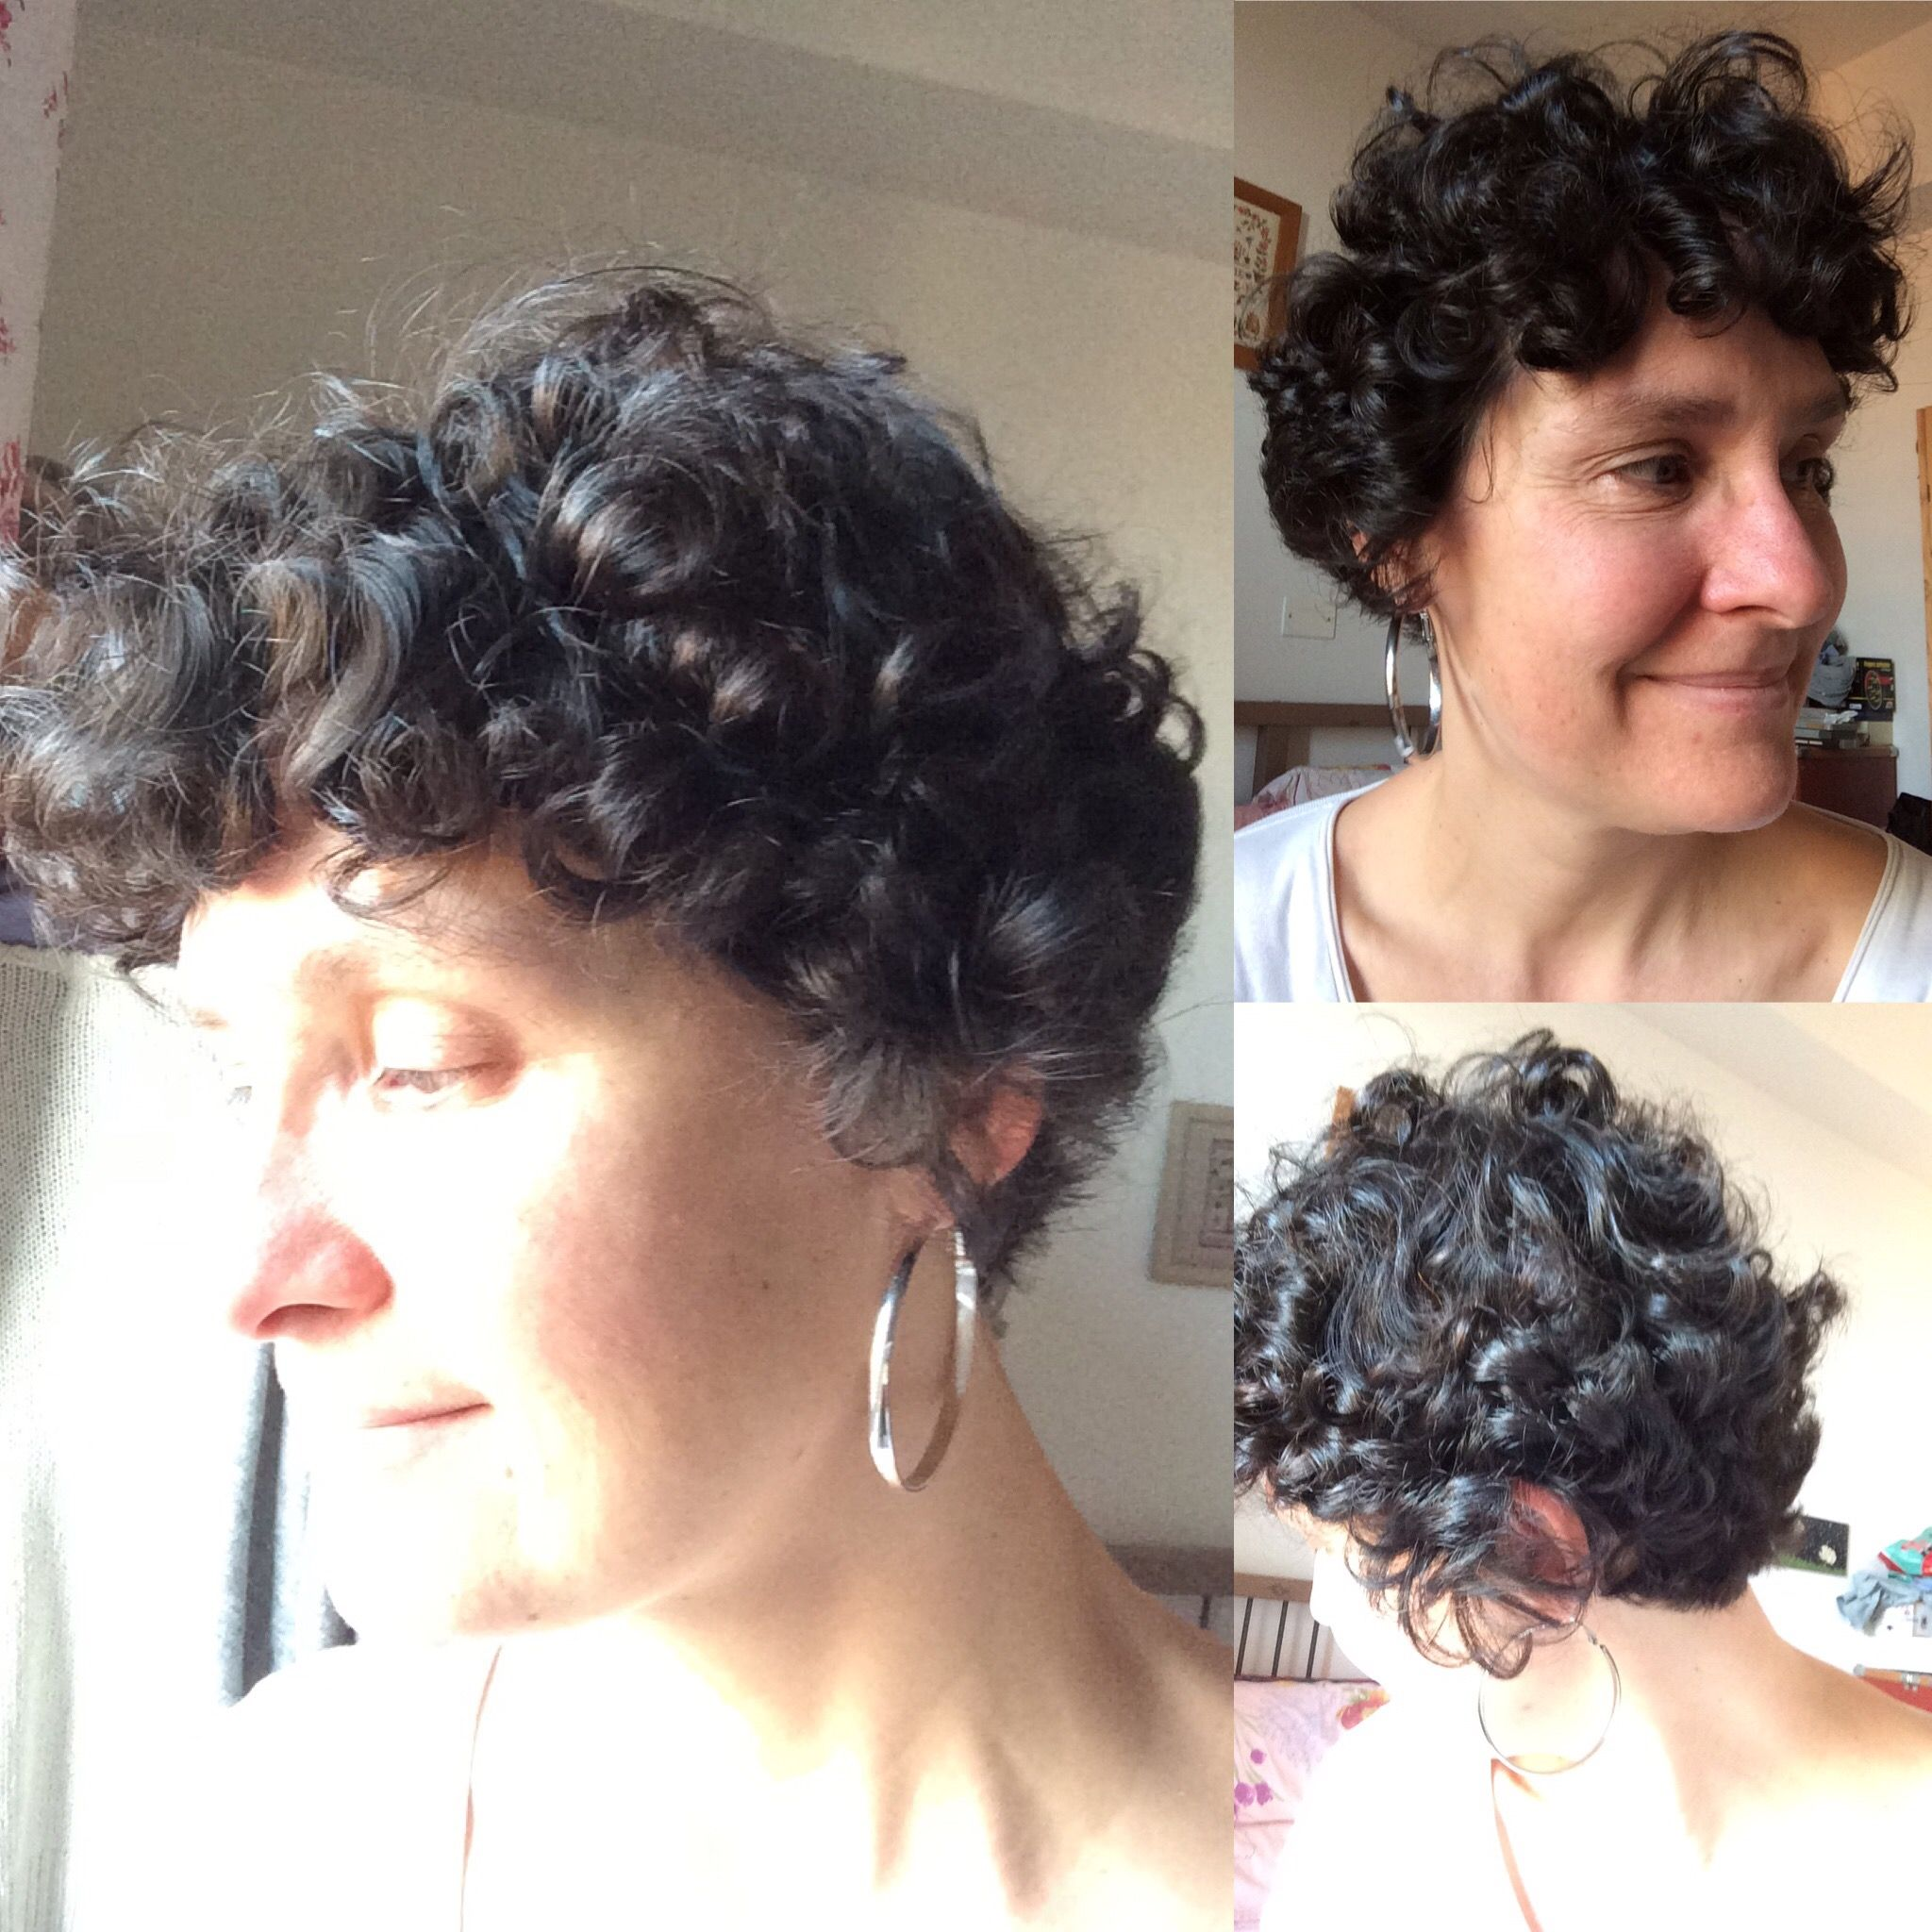 free chemo curls ! one year and two weeks post last chemo